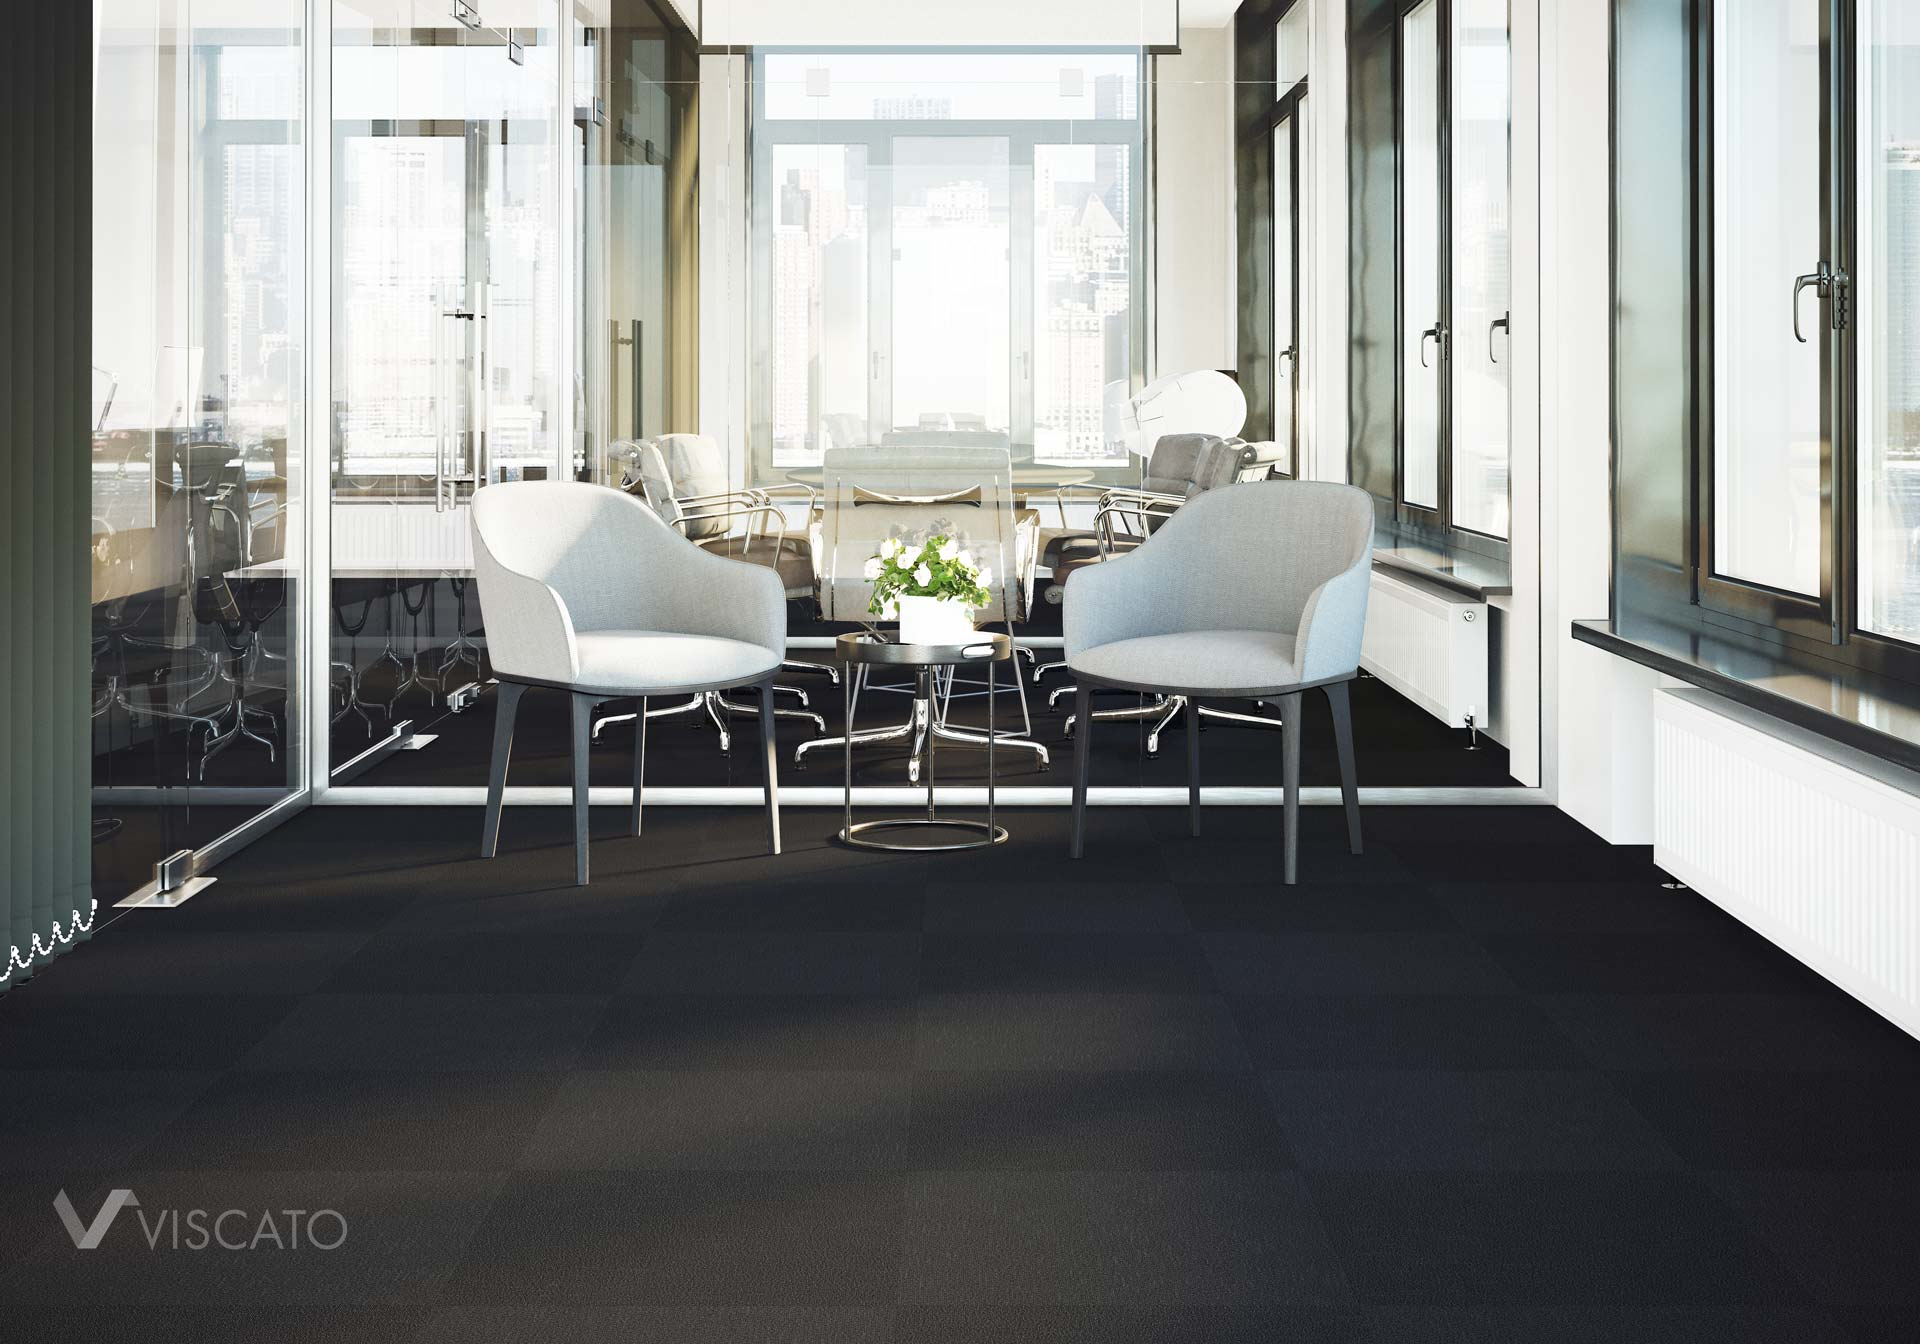 modern carpet tiles for the office purposes- 3D renders